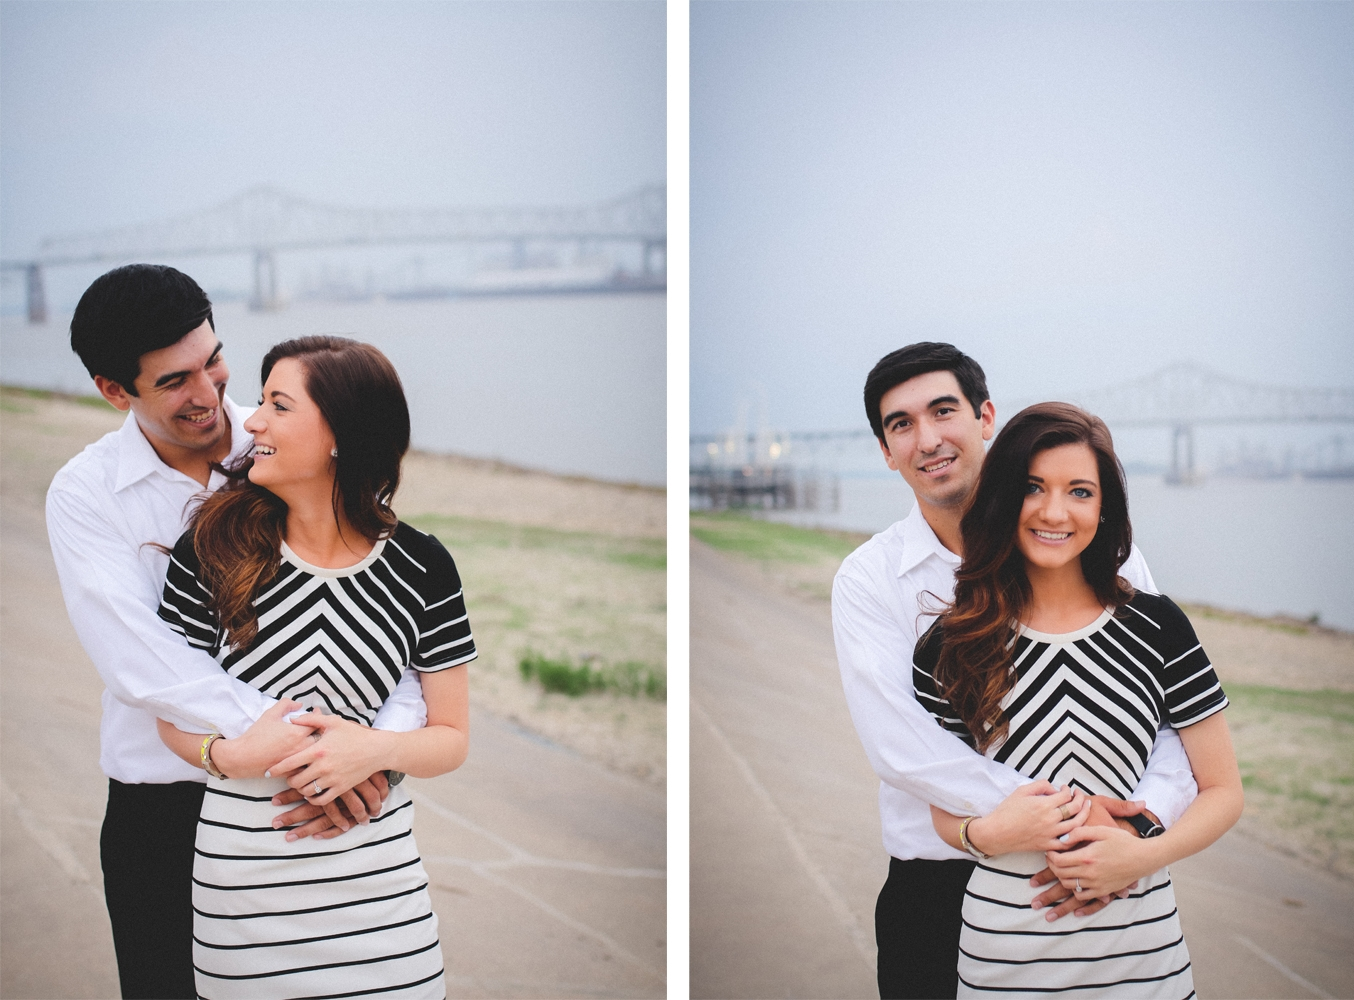 liz and matt | The Picture People by Christi Childs1.jpg